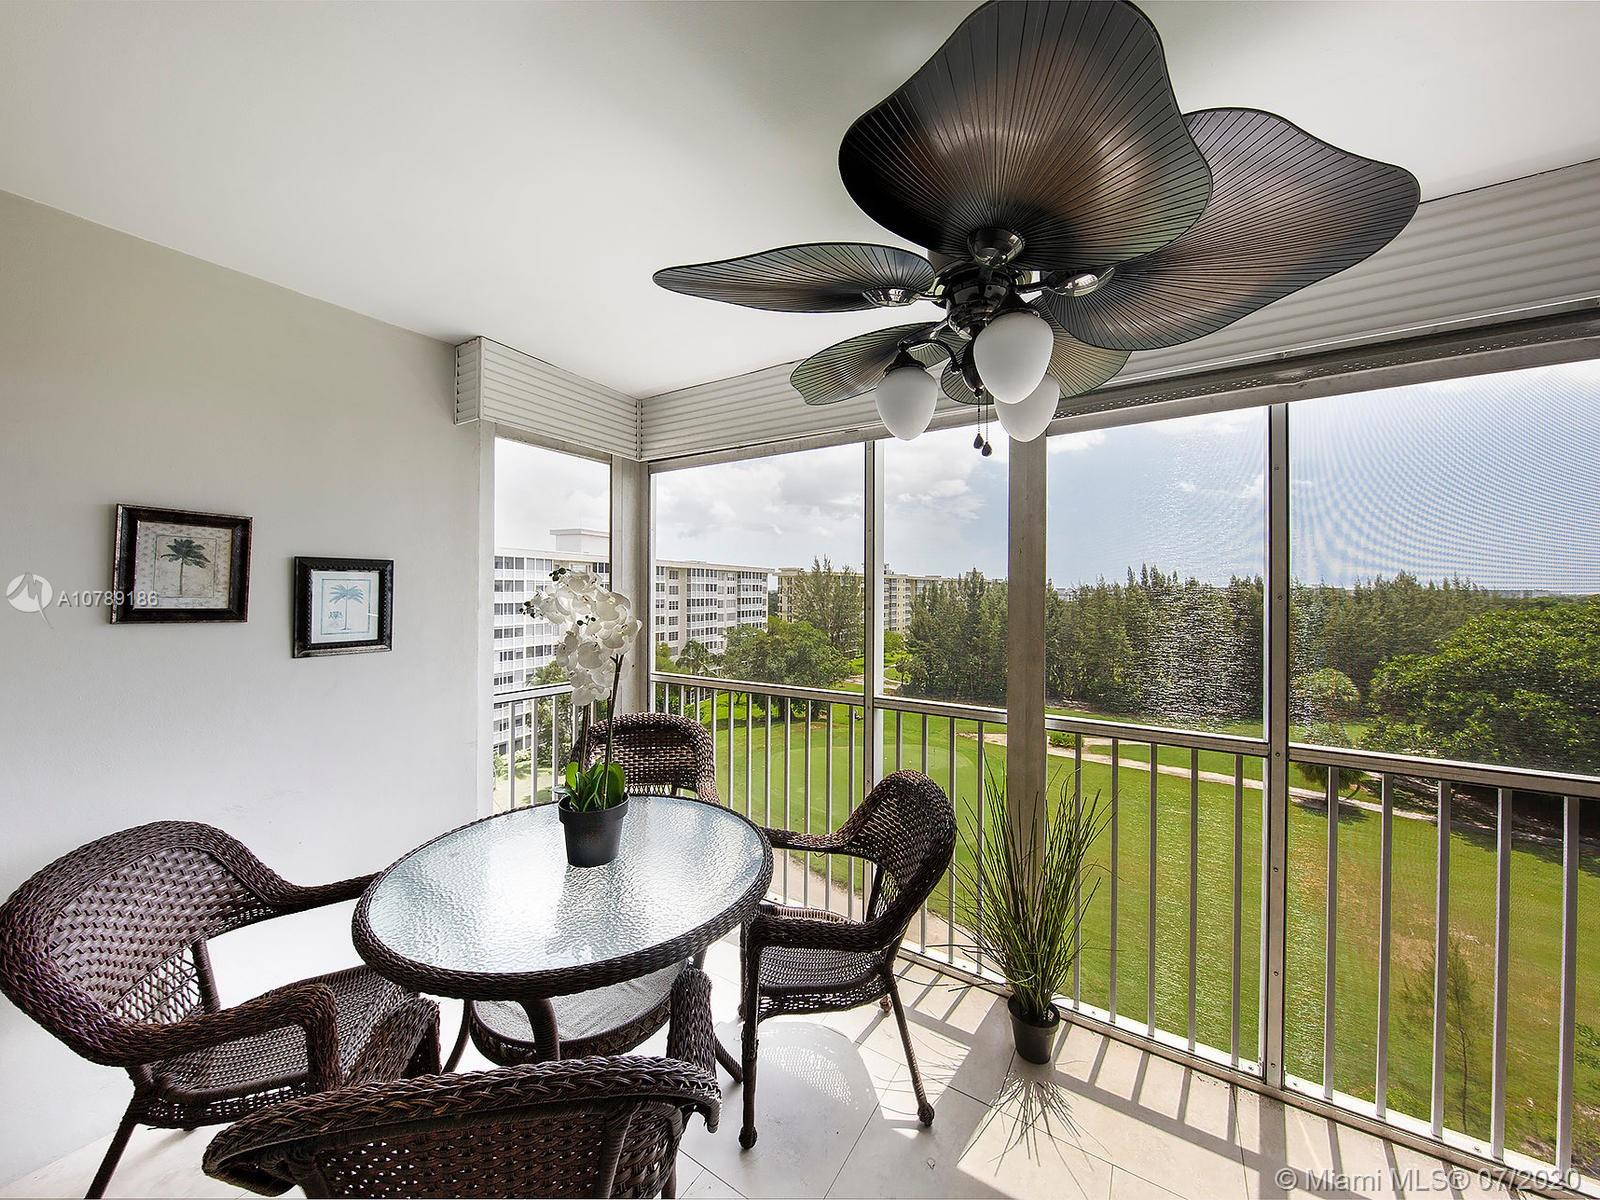 BEST VIEW with screen in balcony over looking PALM AIRE golf green #4. IMMACULATE condo features 2 Bedrooms/2 Baths fully renovated, marble like ceramic floors, granite counter top, newer stainless steel appliance with great breakfast area. Comes fully furnished. 40 year assesment has been done. Well maintained building next to pool. Pool and Clubhouse areas have been fully renovated. Walk to the park, tennis court and Publix is located inside the Palm Aire community.  HOA requires 20% down payment. Minutes to the beach and restaurants. PRICE to SELL. Easy to show.